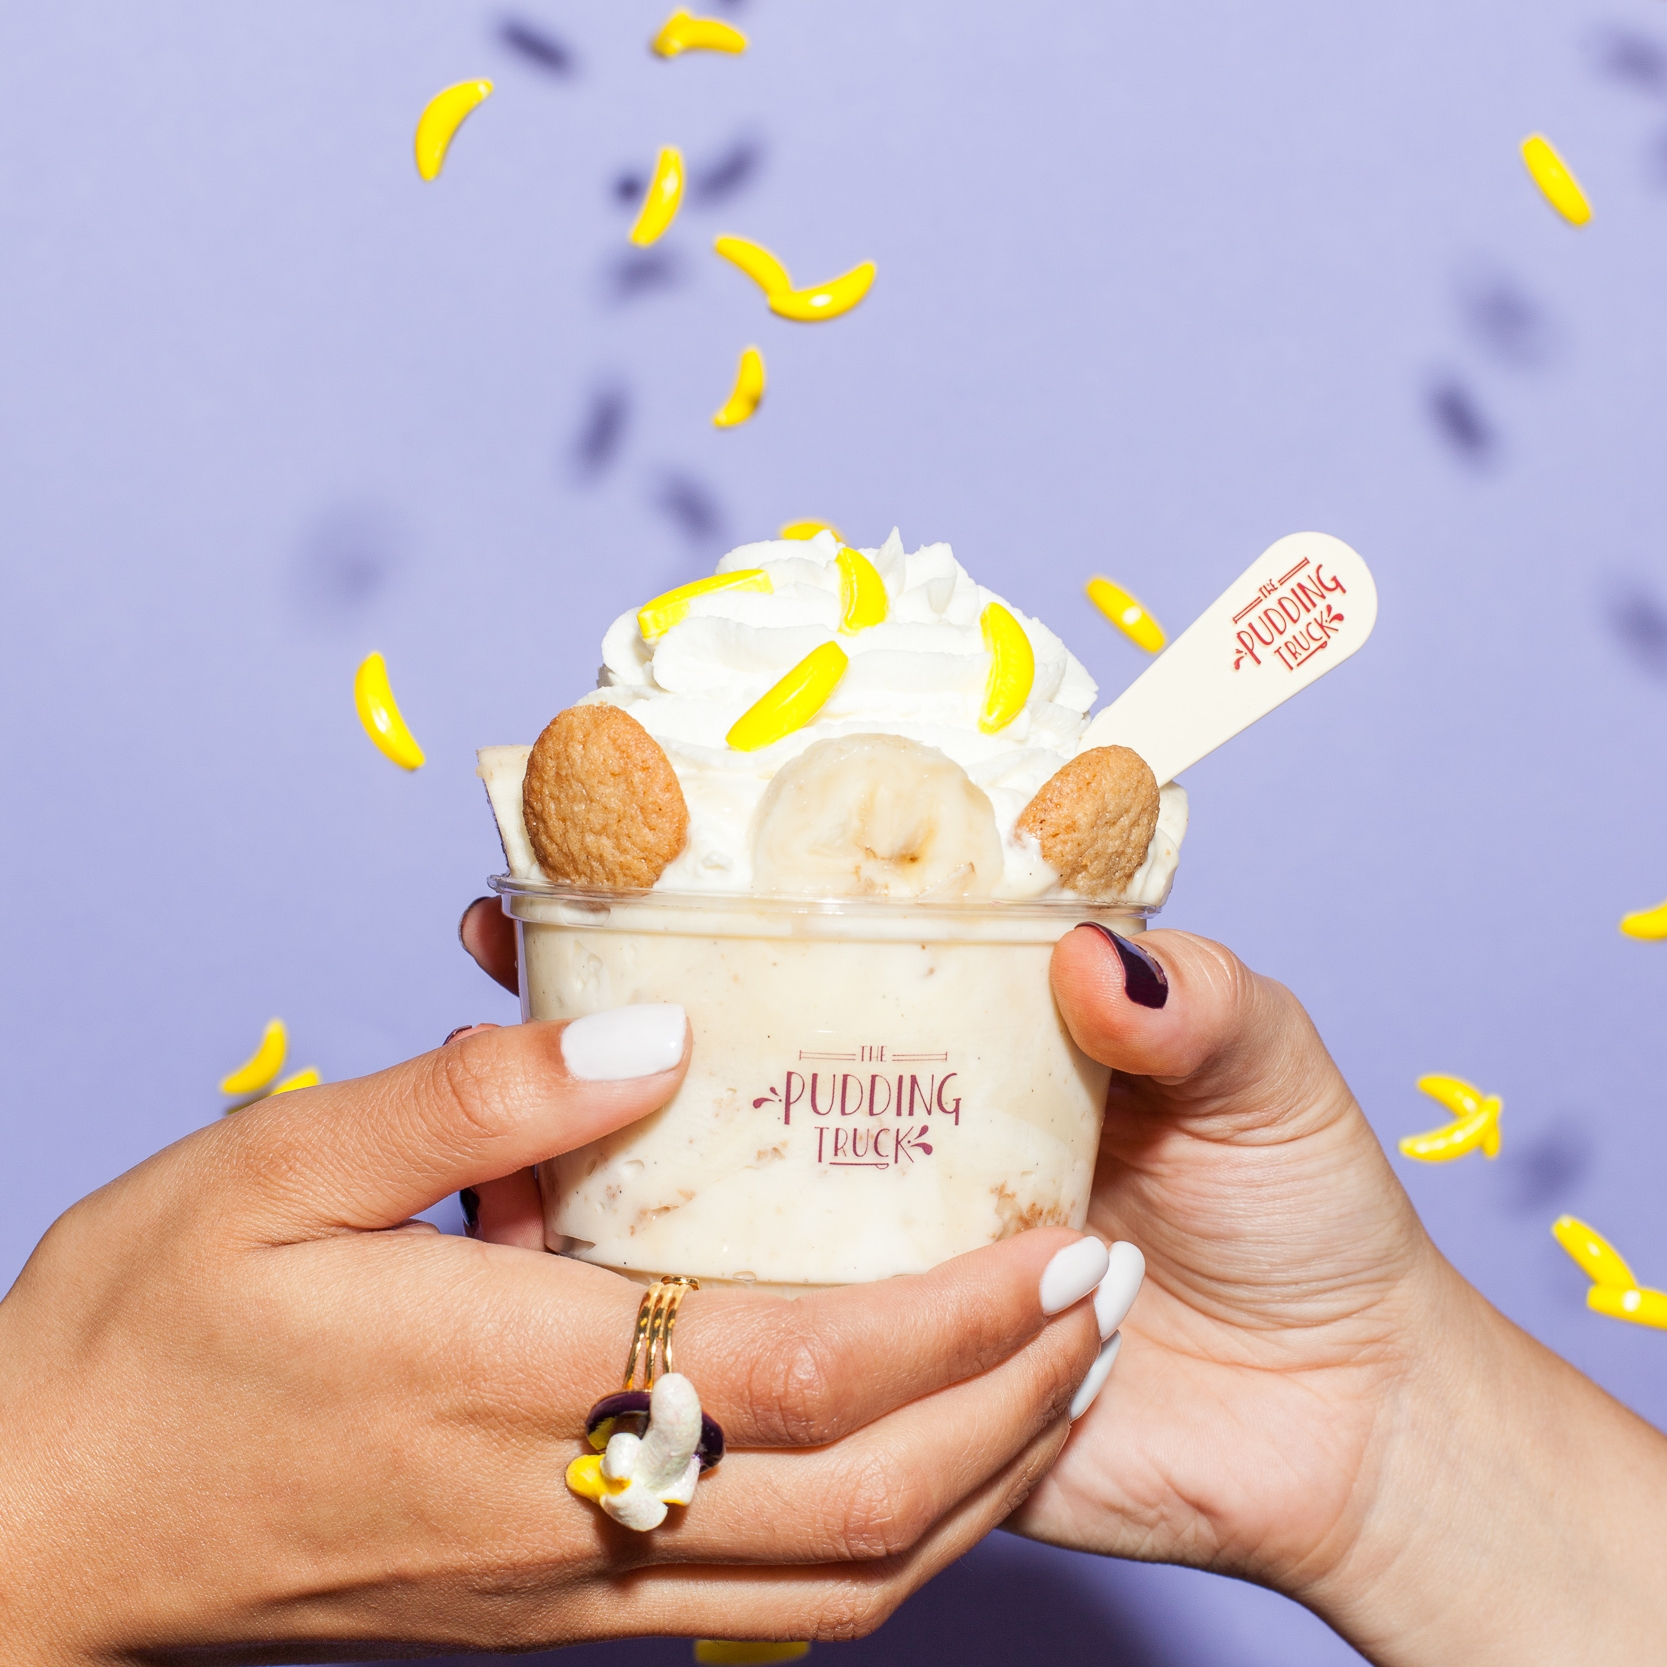 Southern-Style Banana Pudding - Our classic vanilla bean pudding layered and topped with homemade brown butter vanilla wafers, bananas, and fresh whipped cream. We put a Californian spin on the Southern staple and it's our #1 fan favorite!